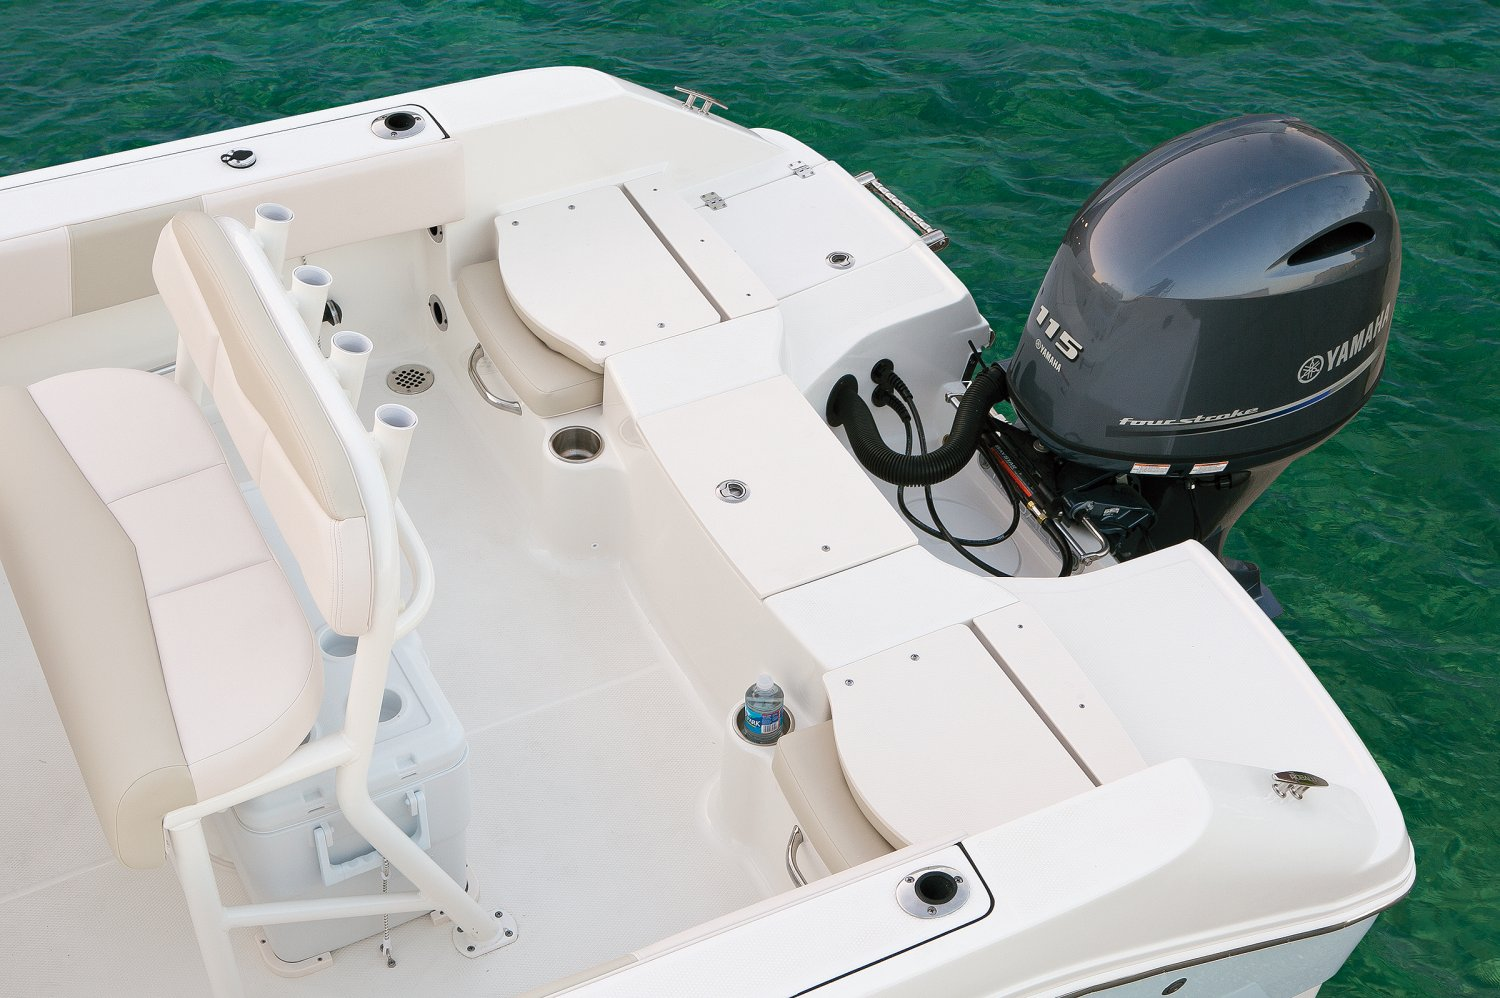 6246099_0_311219691600_19?t=1259695 new 2018 robalo r180, gainesville, fl 32609 boattrader com robalo 1820 wiring diagram at fashall.co